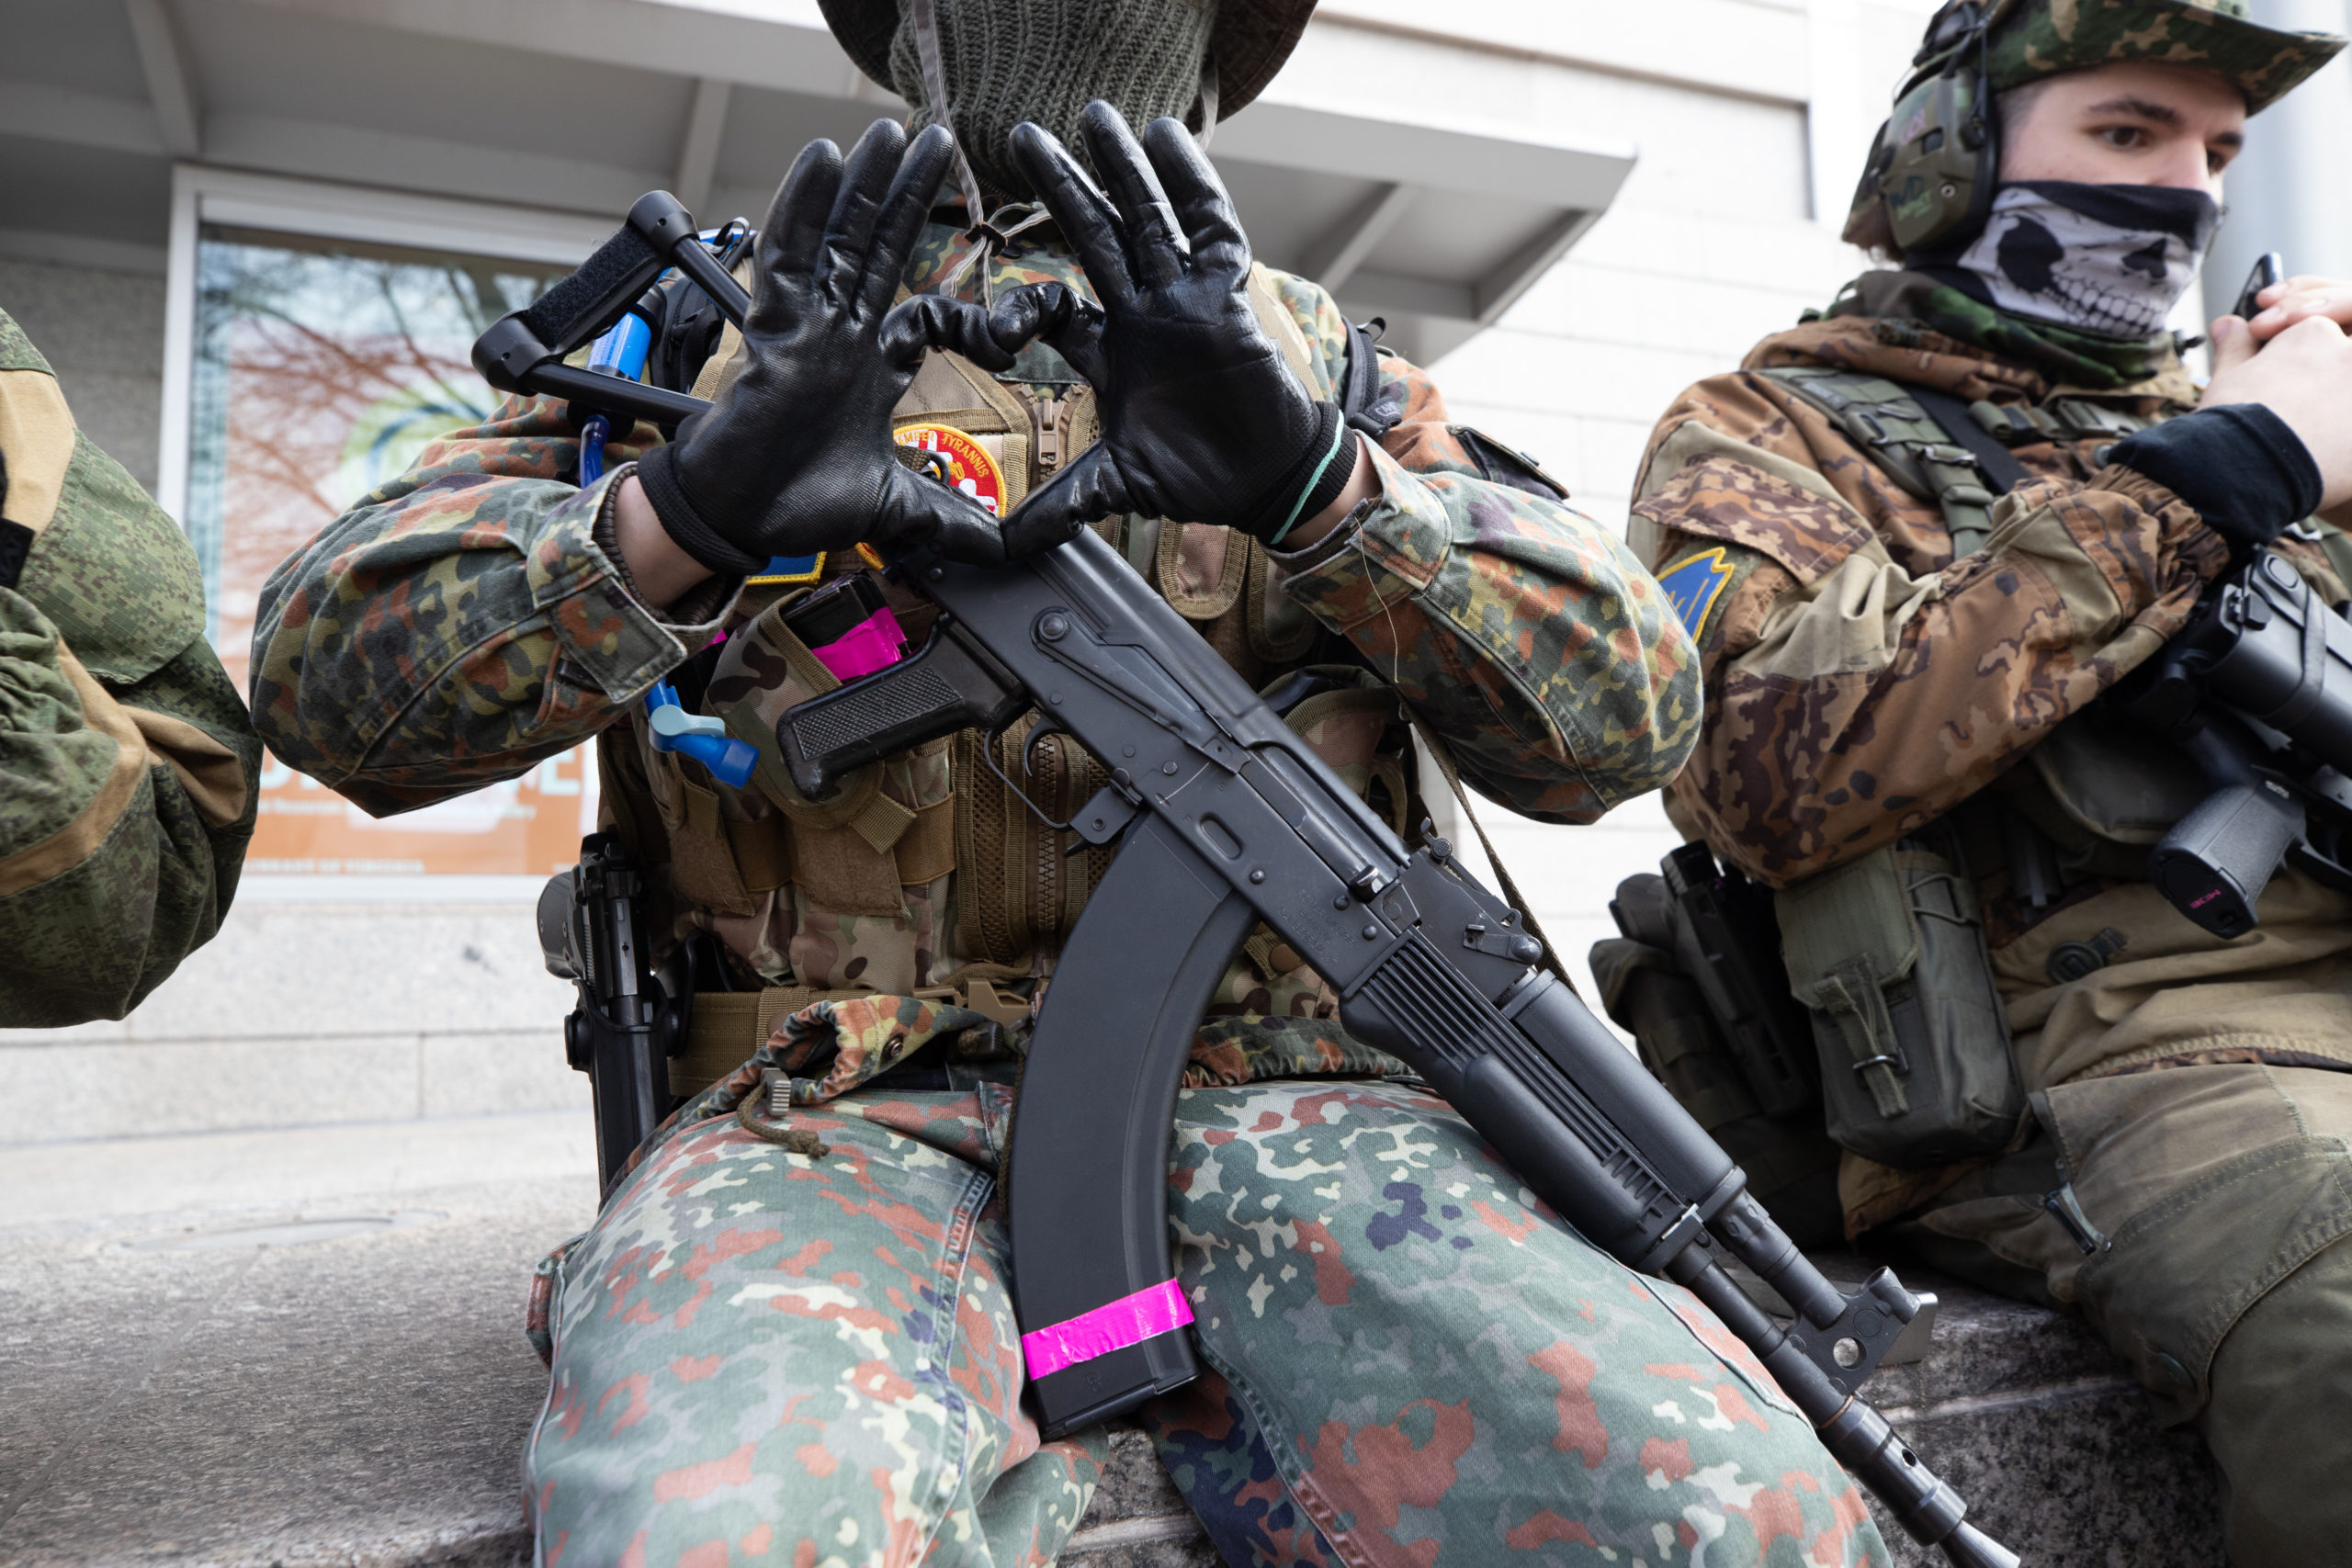 An armed demonstrator made a hand gesture while wearing a patch associated with a 4 Chan board catalog in Richmond, Virginia on January 18, 2021. (Kaylee Greenlee - Daily Caller News Foundation)